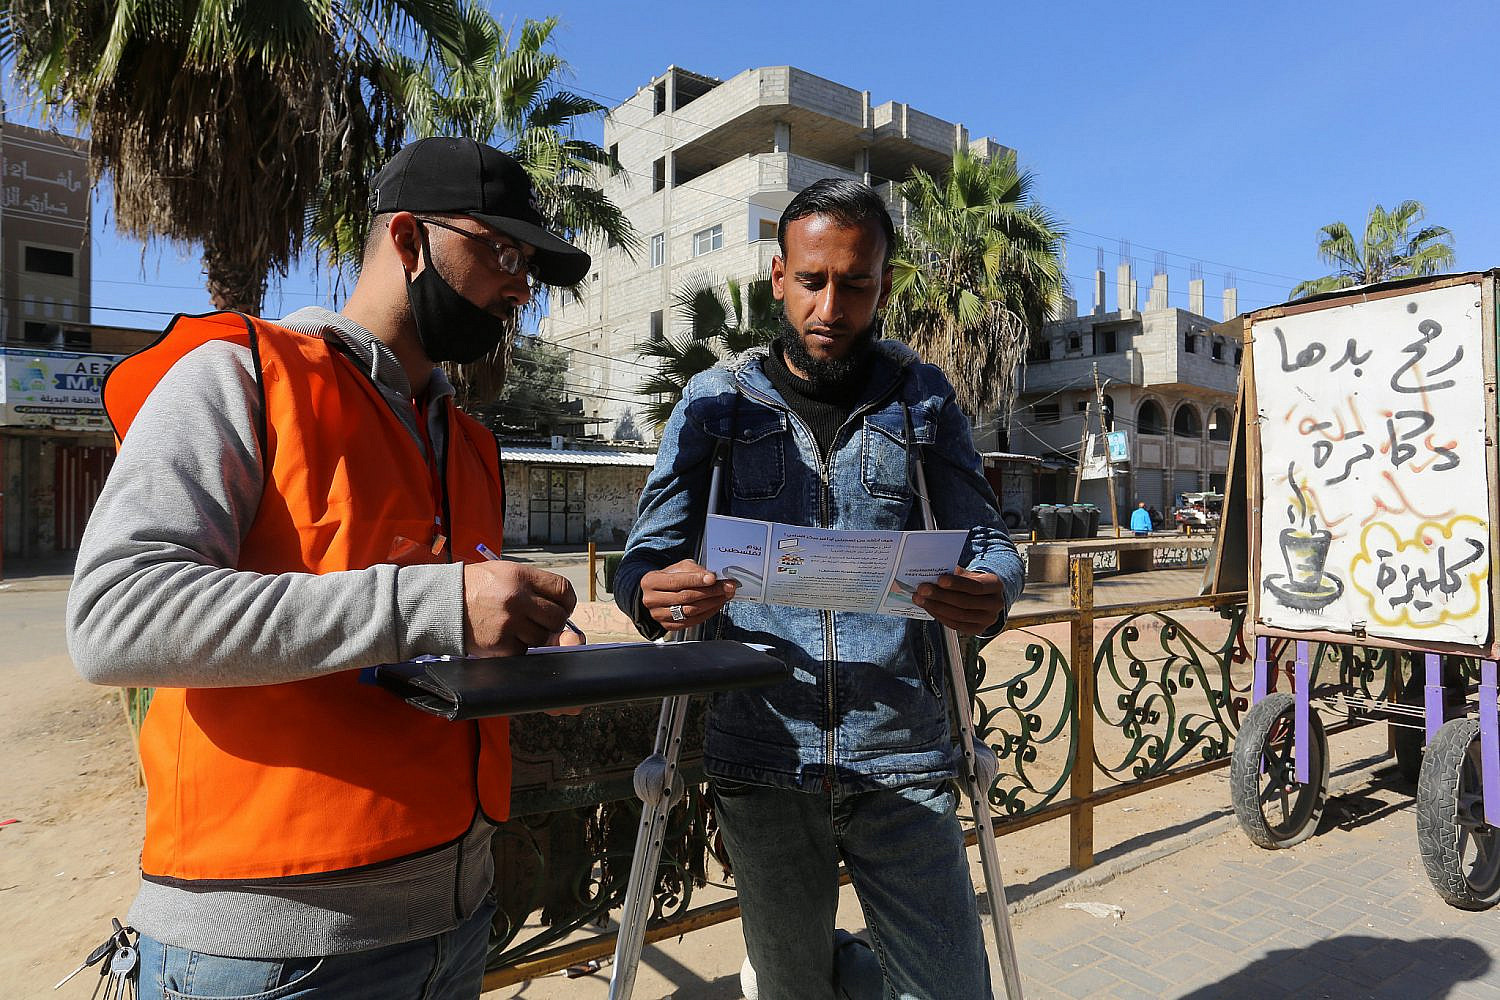 Palestinian Central Election Commission workers register residents in preparation for May elections, in Rafah, southern Gaza Strip, Feb. 10, 2021. (Abed Rahim Khatib/Flash90 )